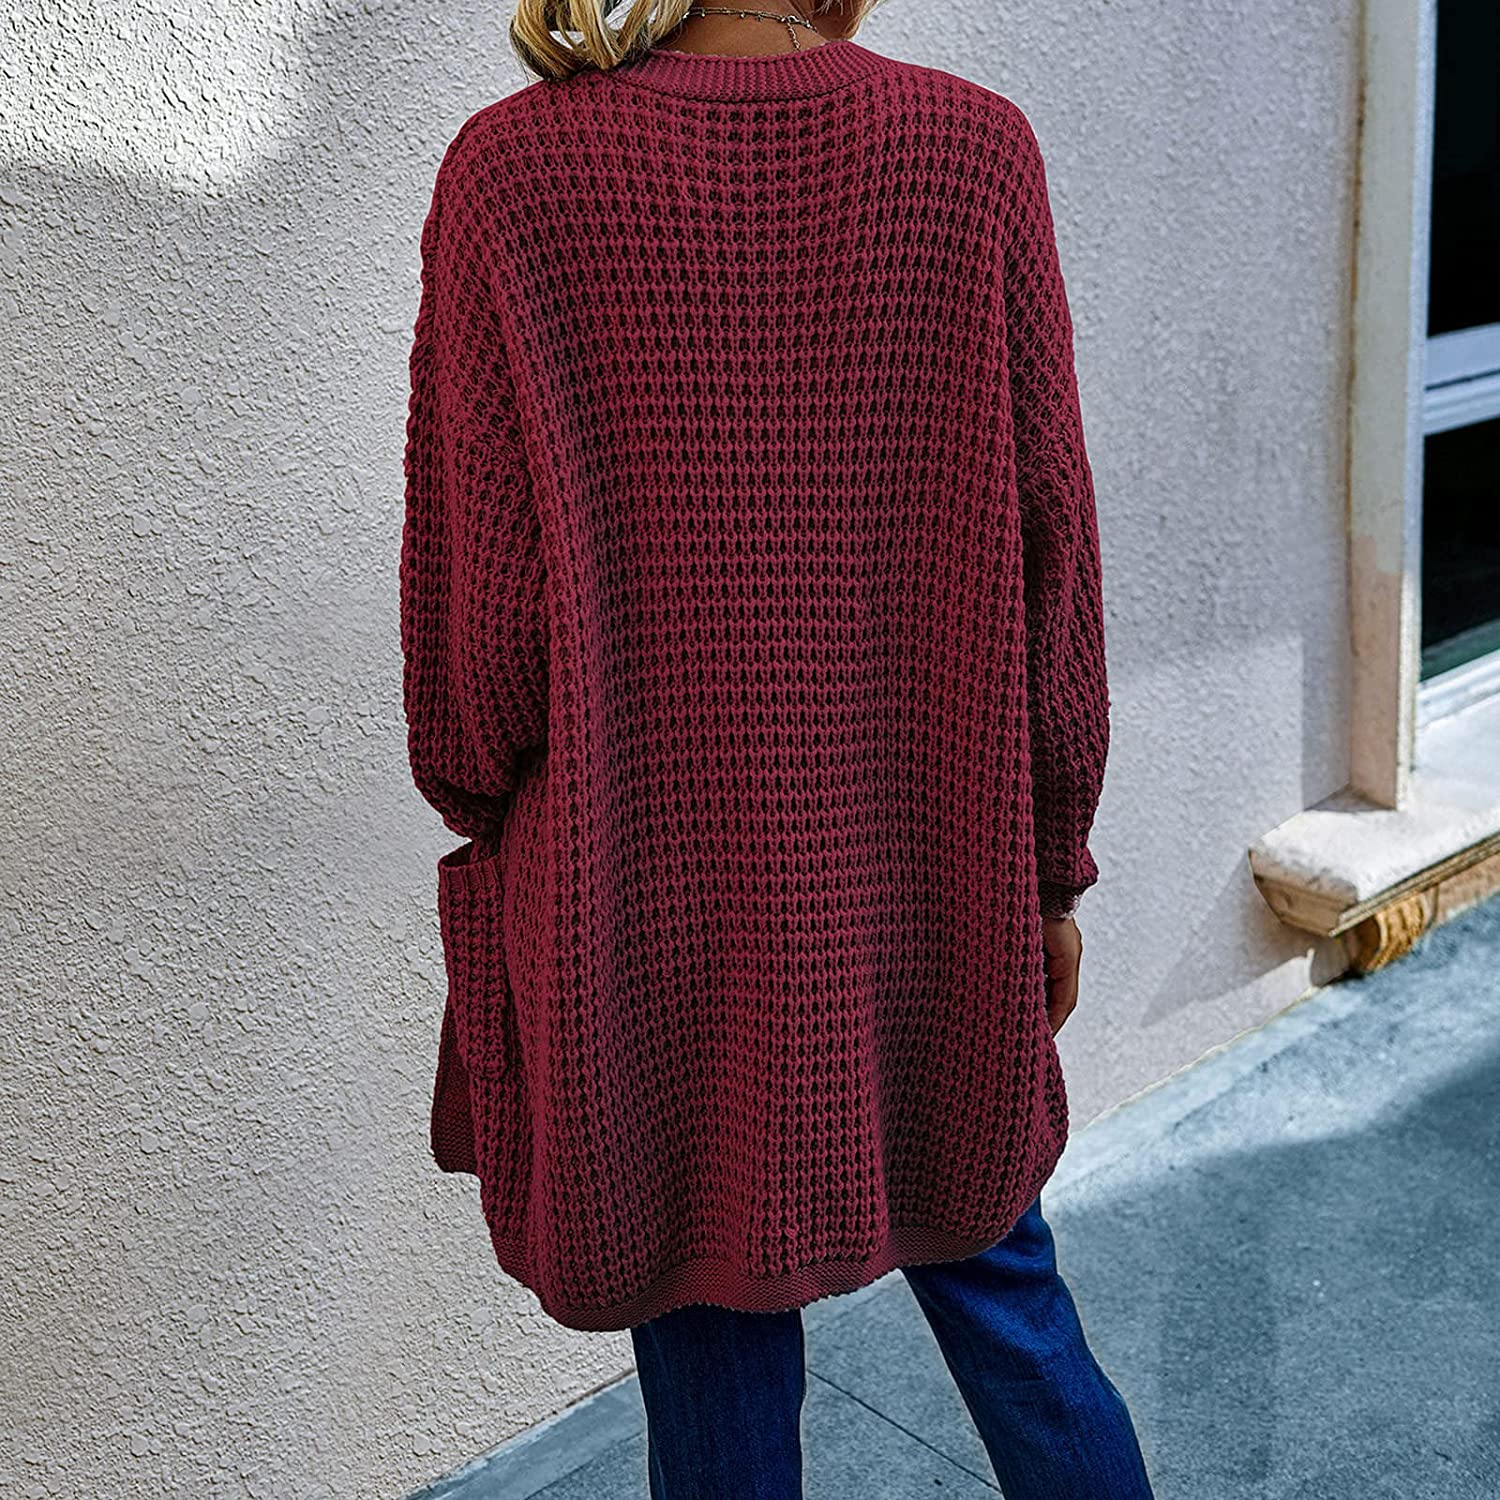 GBSELL Women's Open Front Long Sleeve Knit Chunky Cardigan Batwing Sweater with Pockets Draped Sweaters Outwear Cardigans (S, Wine)